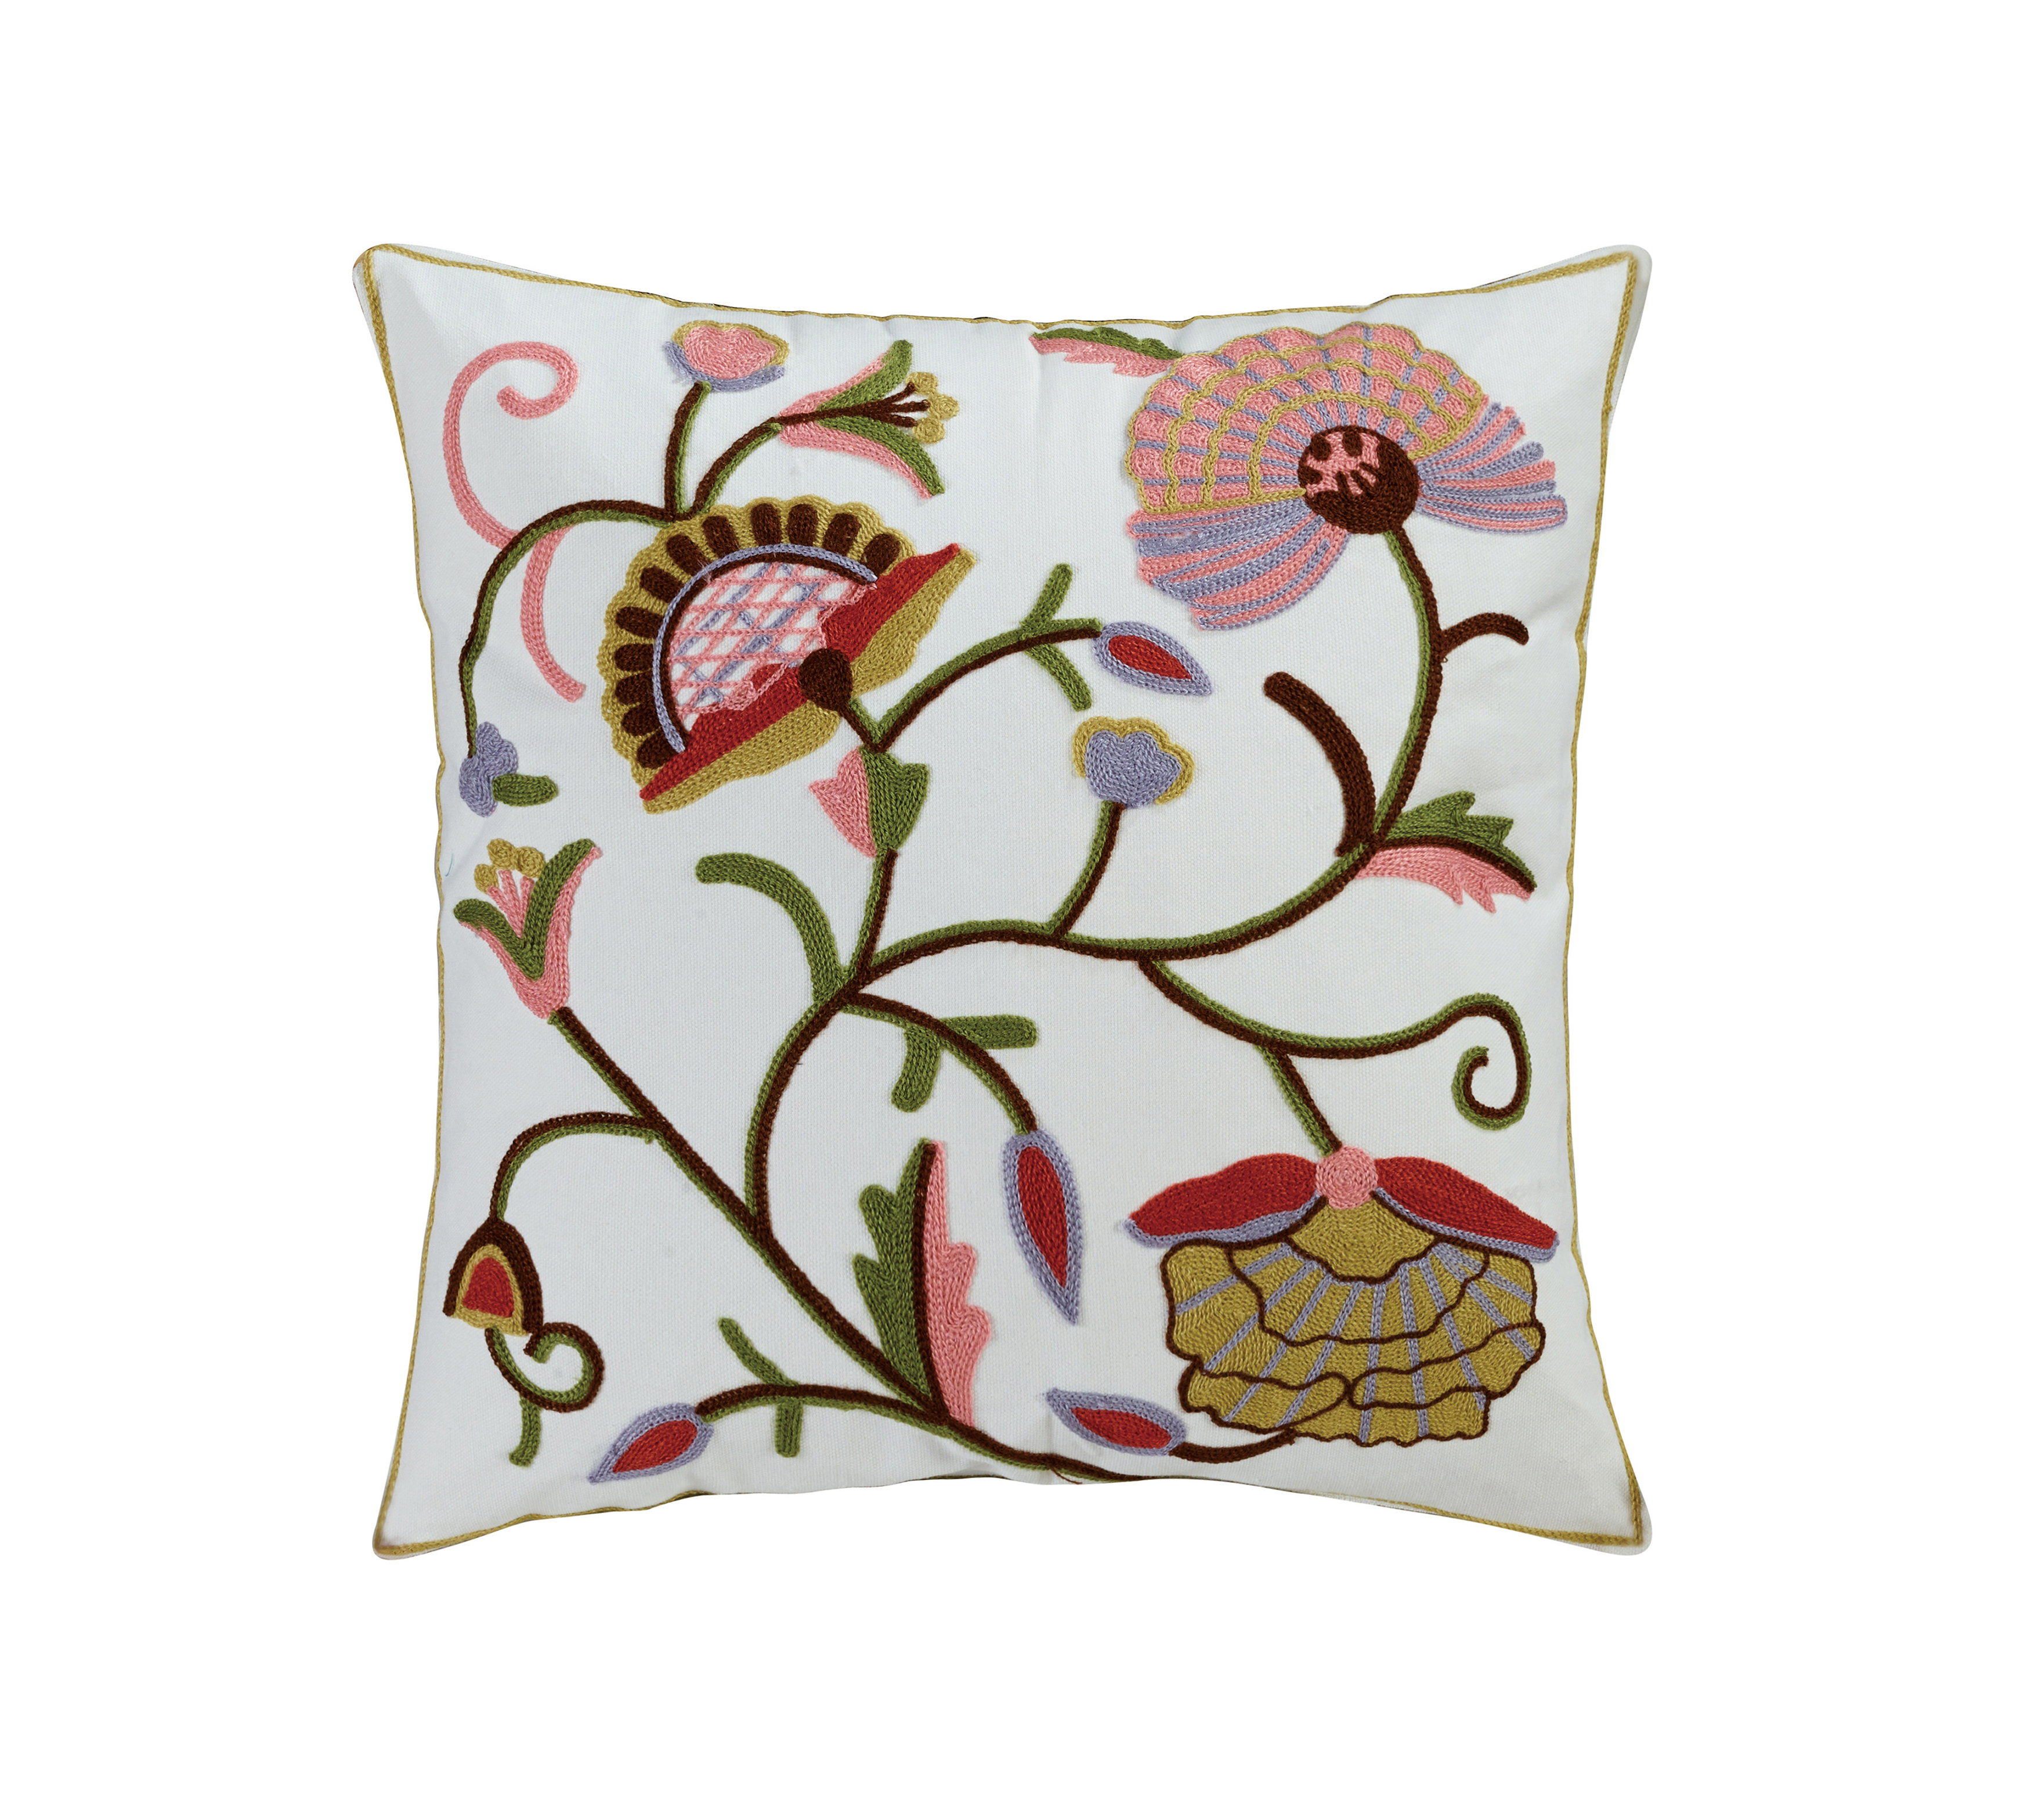 Aya Cotton Embroidered Throw Pillow by Elight Home